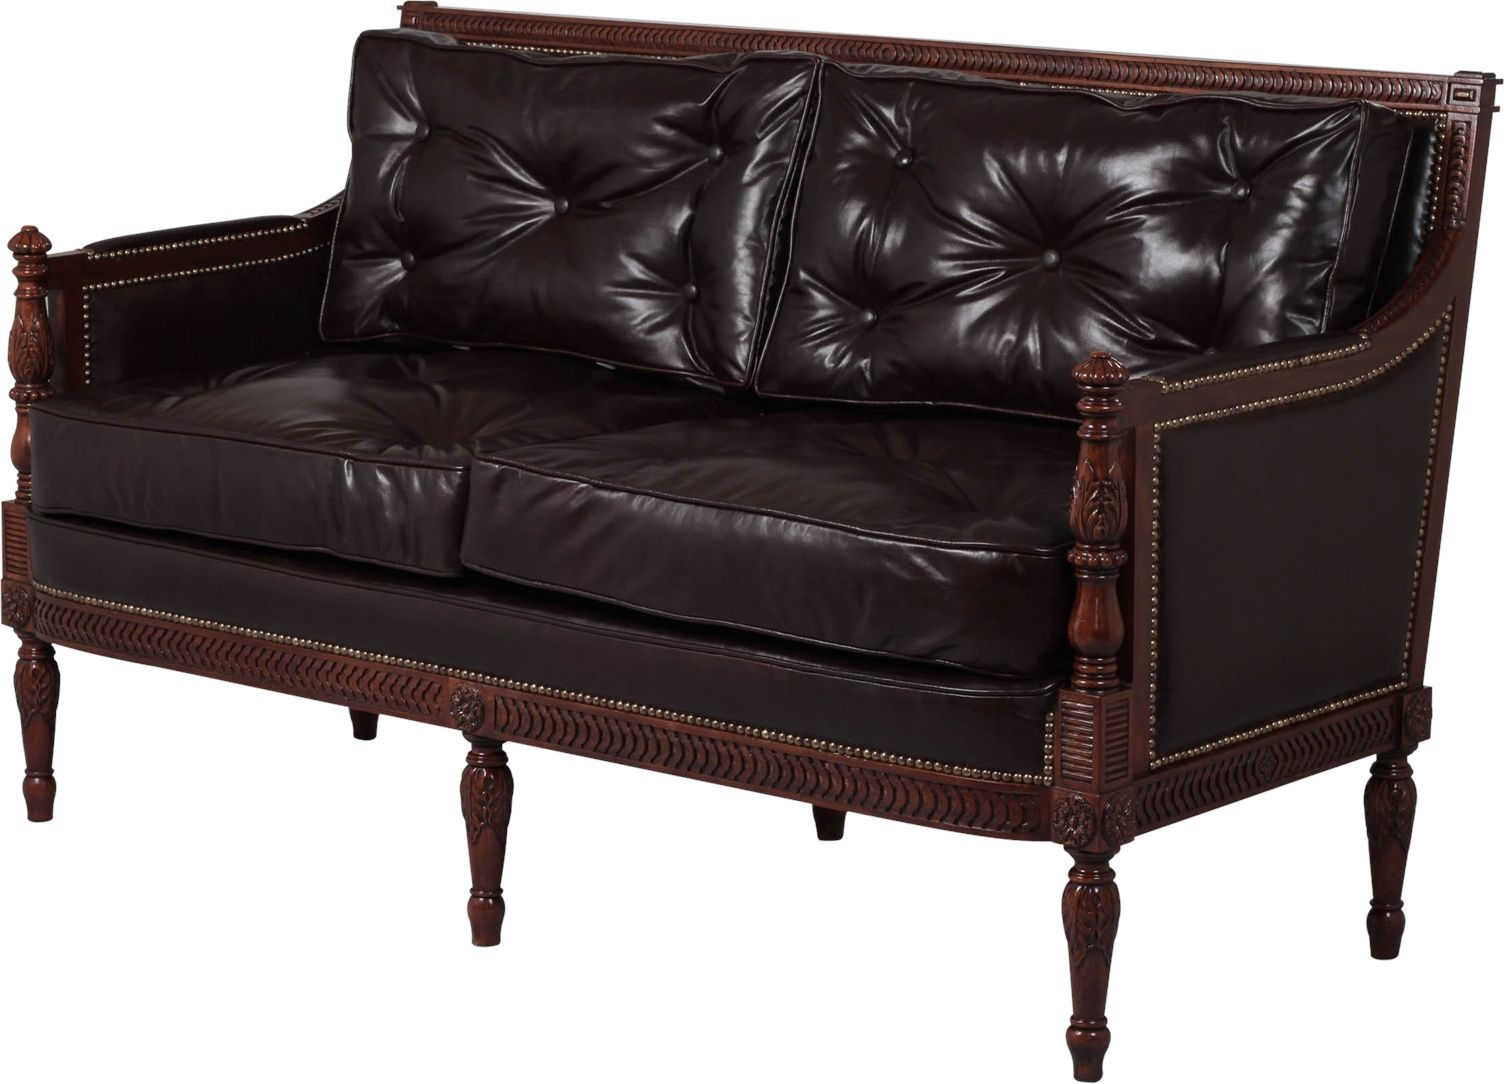 Scarborough House Italian Leather Sofa Tufted, Handcrafted Mahogany Brass  2Seat #Furniture #BrassNails #